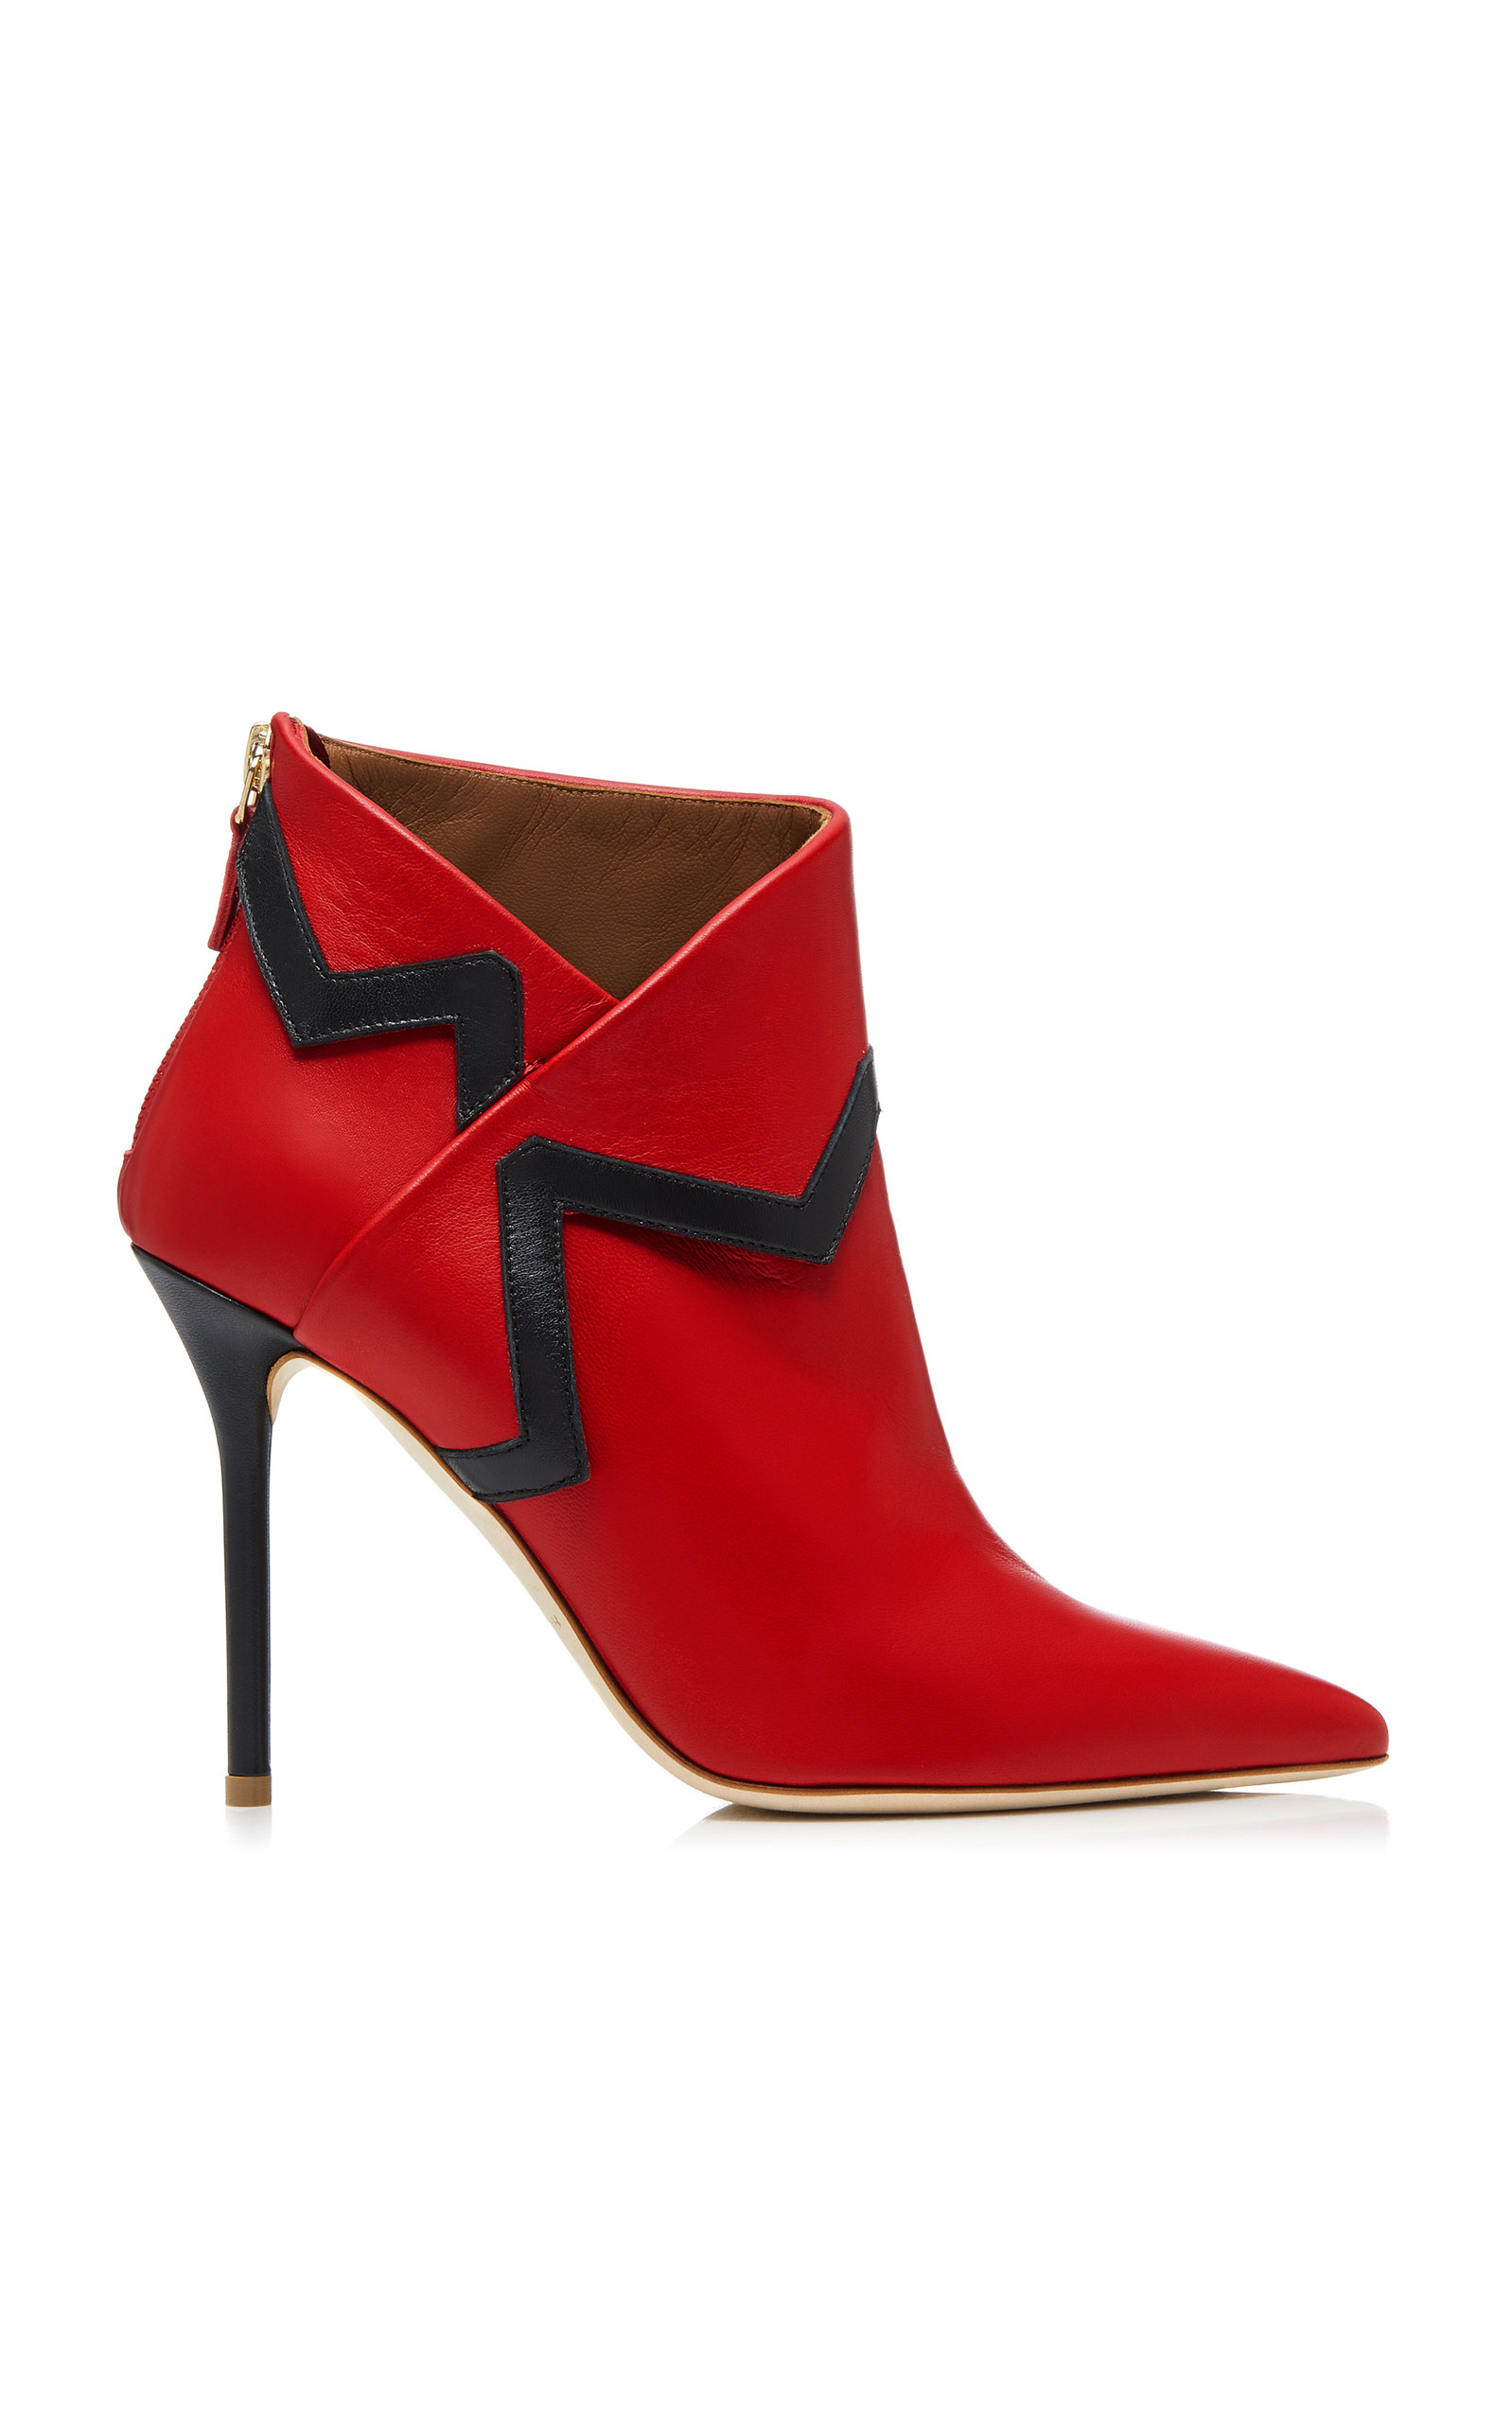 X Emanuel Ungaro Amelie Two-Tone Leather Ankle Boots, Red